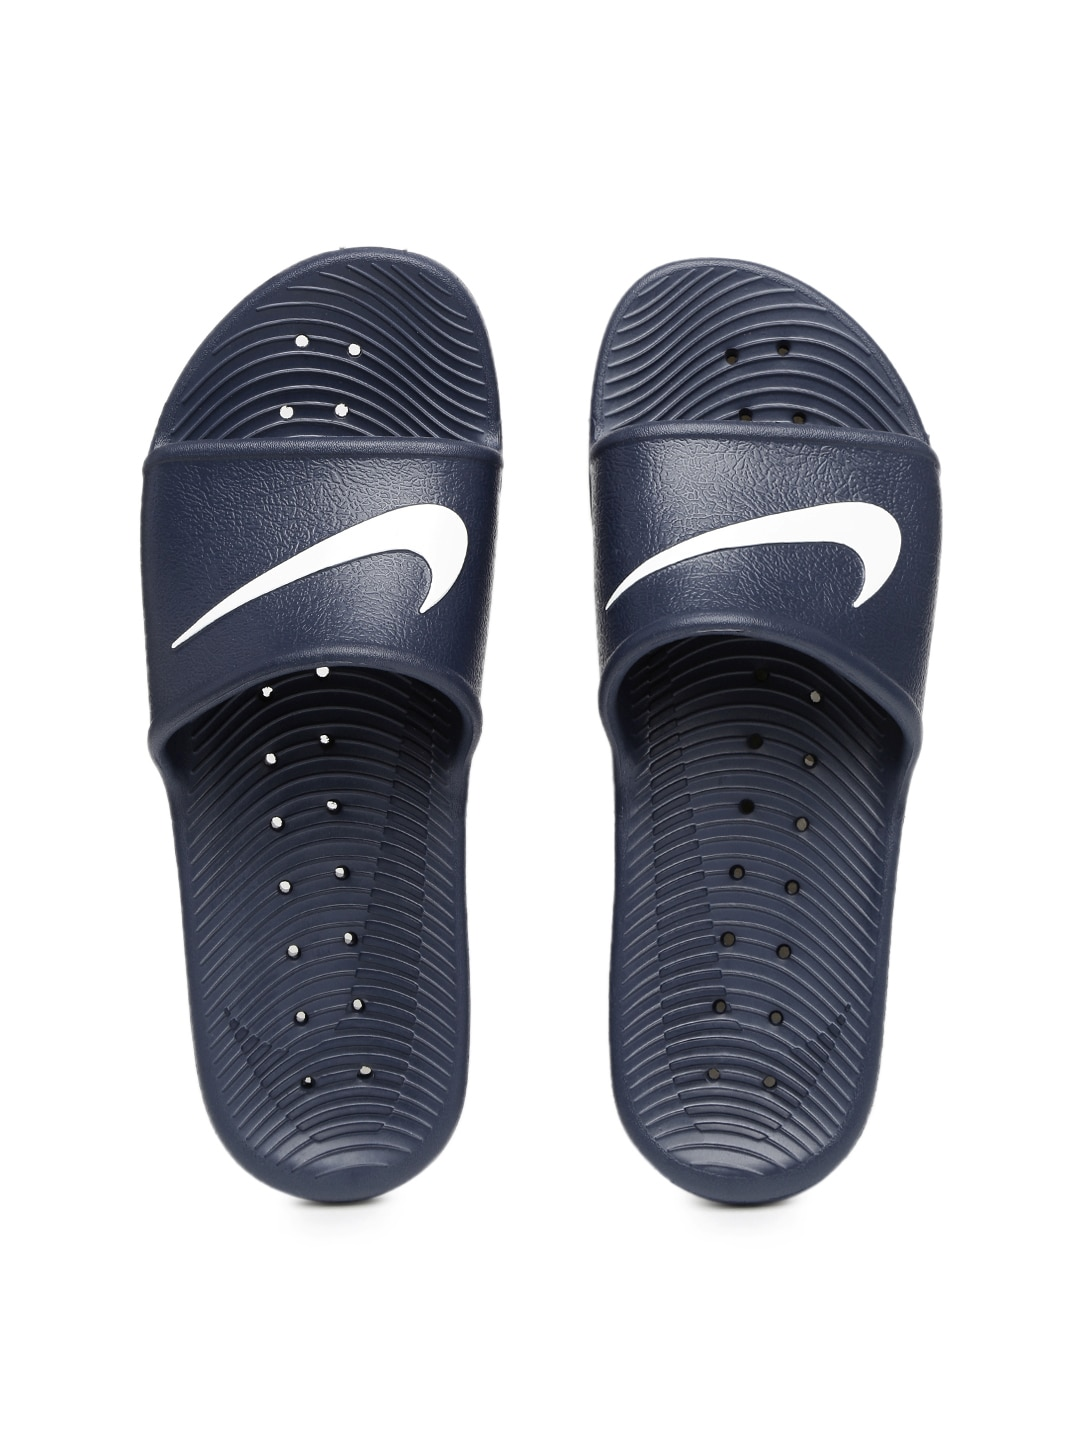 Nike Slipper - Buy Nike Slipper Online in India 268cf57b2